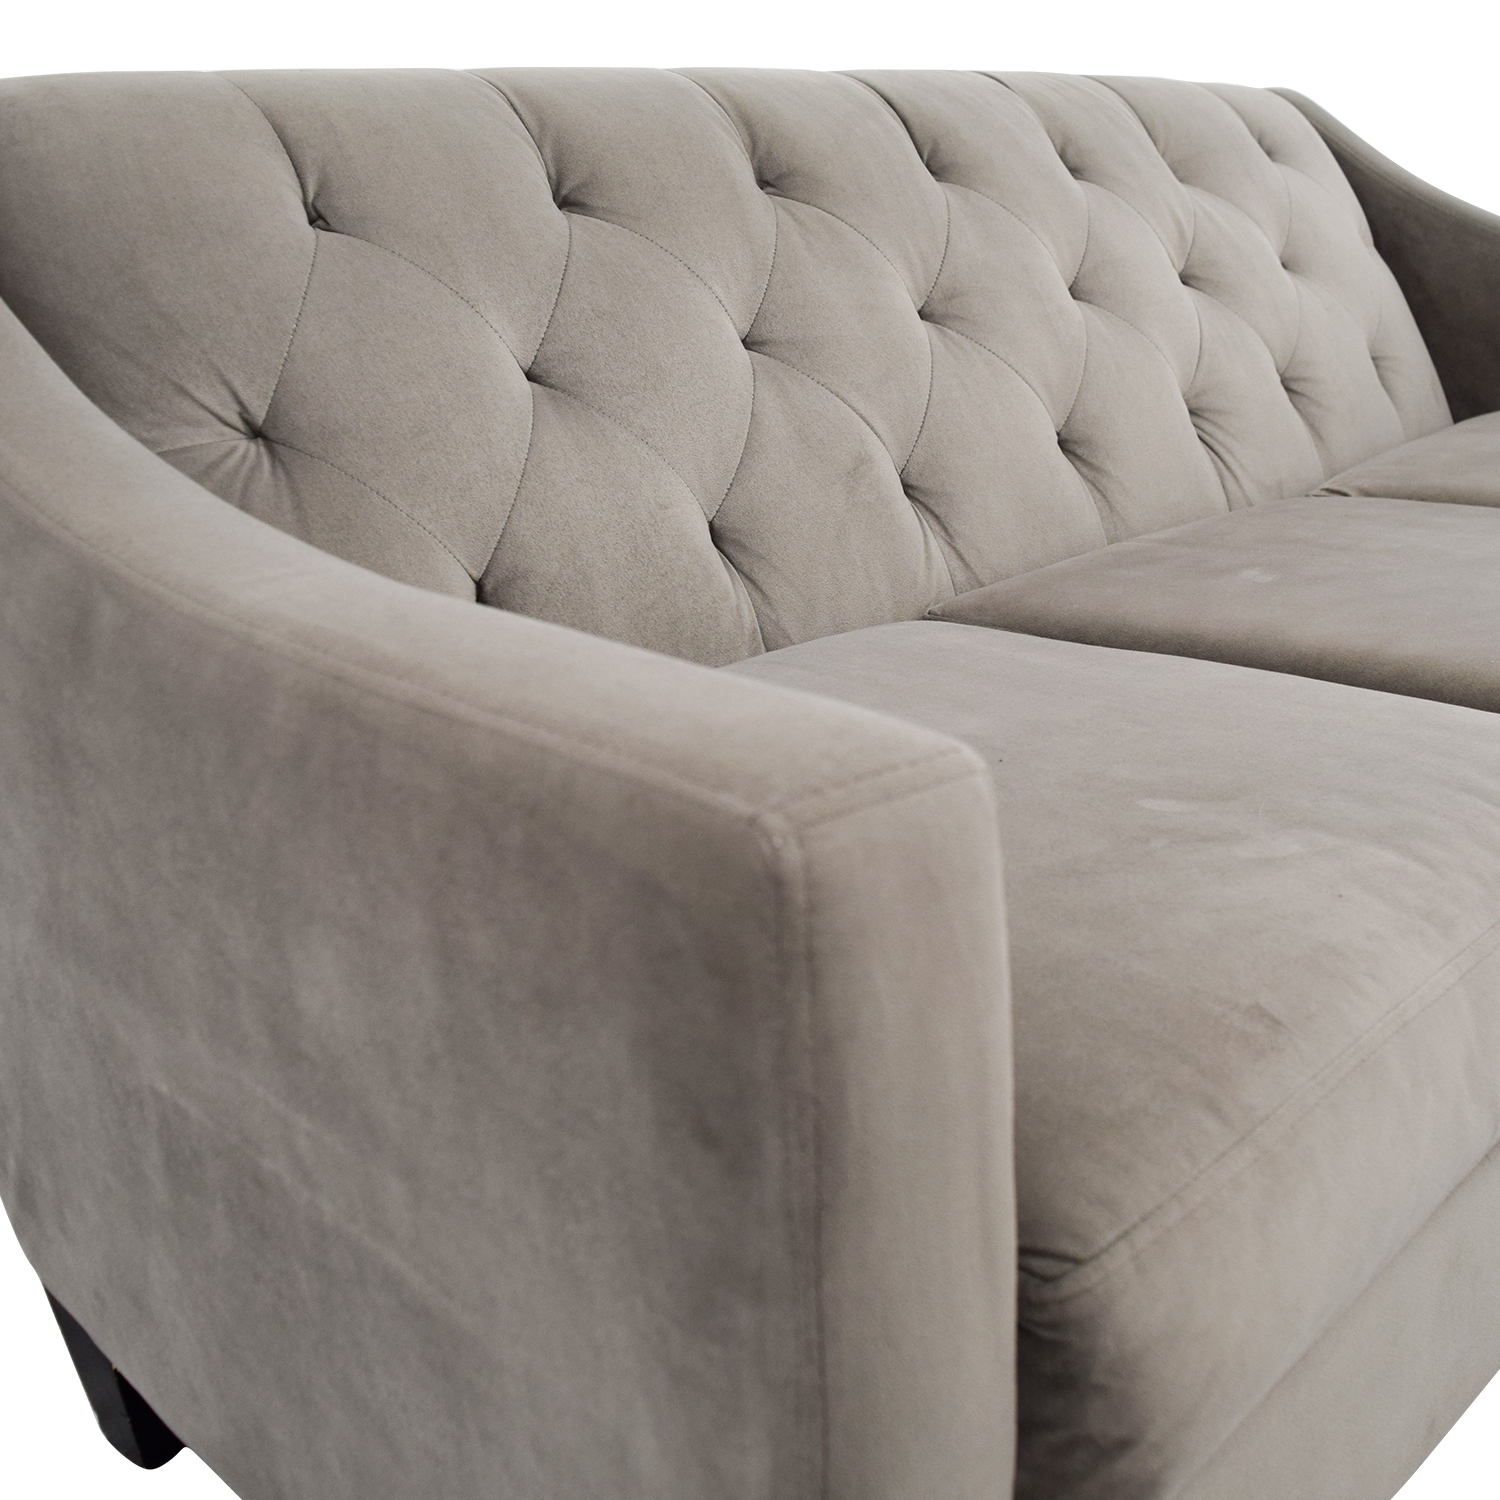 82 Off Macy S Macy S Gray Microfiber Tufted Three Cushion Couch Sofas